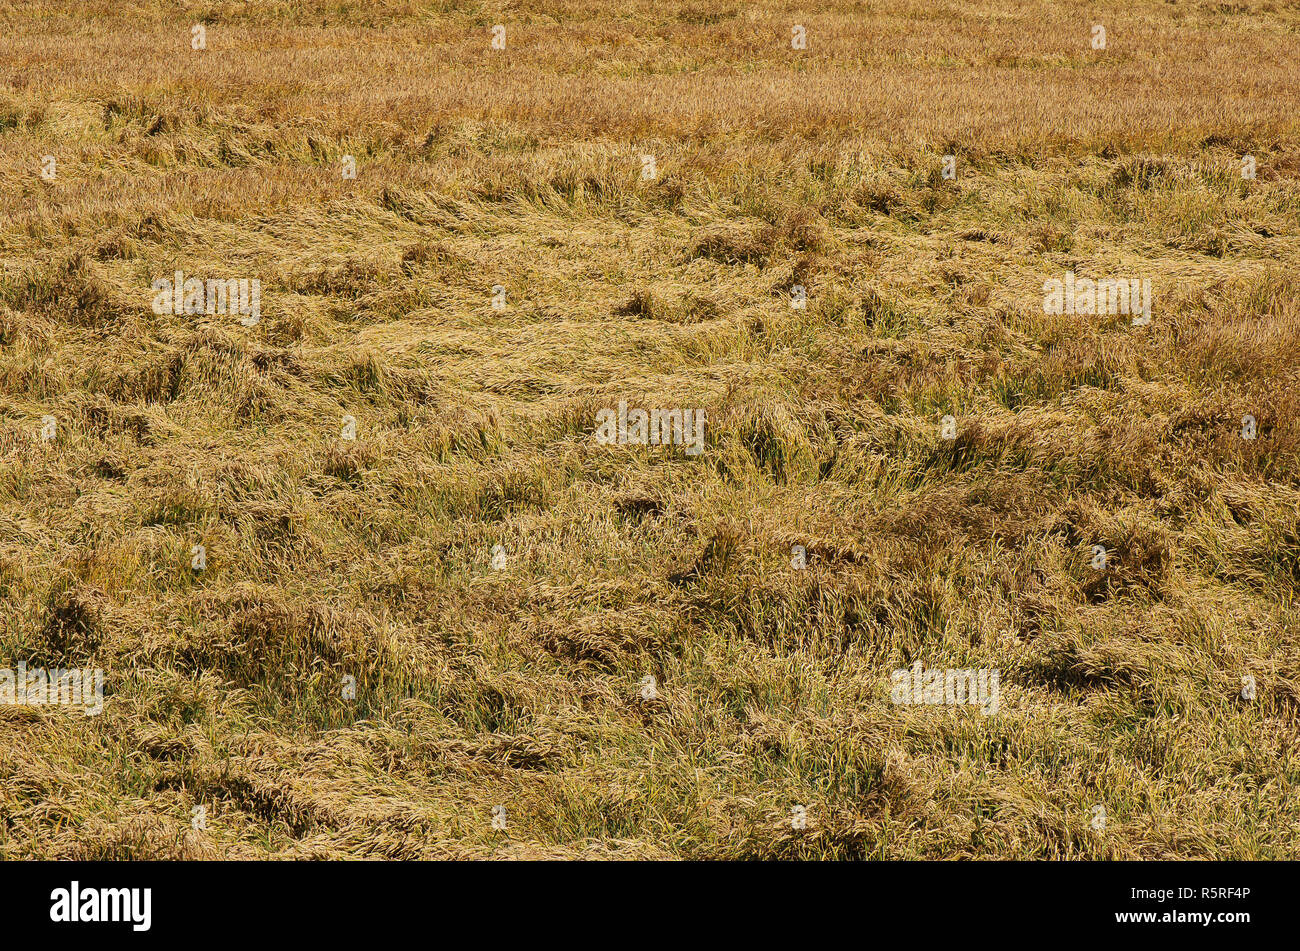 Crop insurance. Destroyed wheat lying on the wheat field - Stock Image